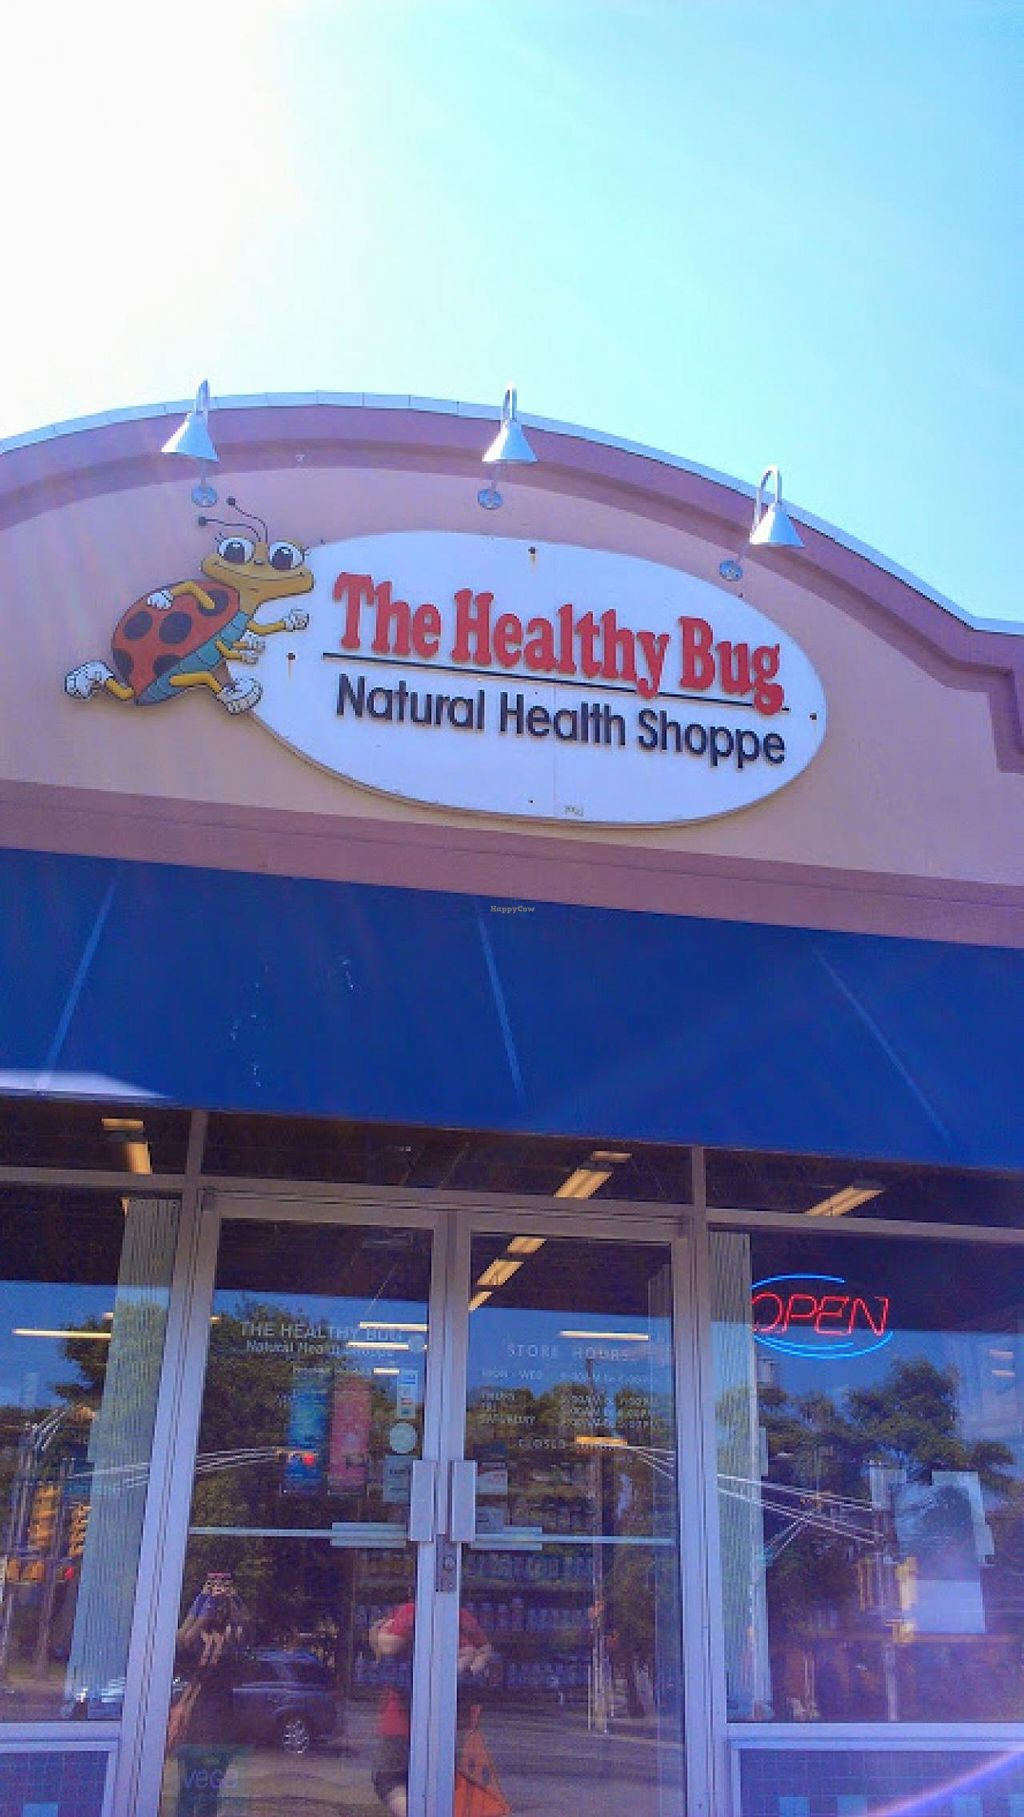 """Photo of The Healthy Bug  by <a href=""""/members/profile/QuothTheRaven"""">QuothTheRaven</a> <br/>Outside <br/> June 28, 2014  - <a href='/contact/abuse/image/6455/72908'>Report</a>"""